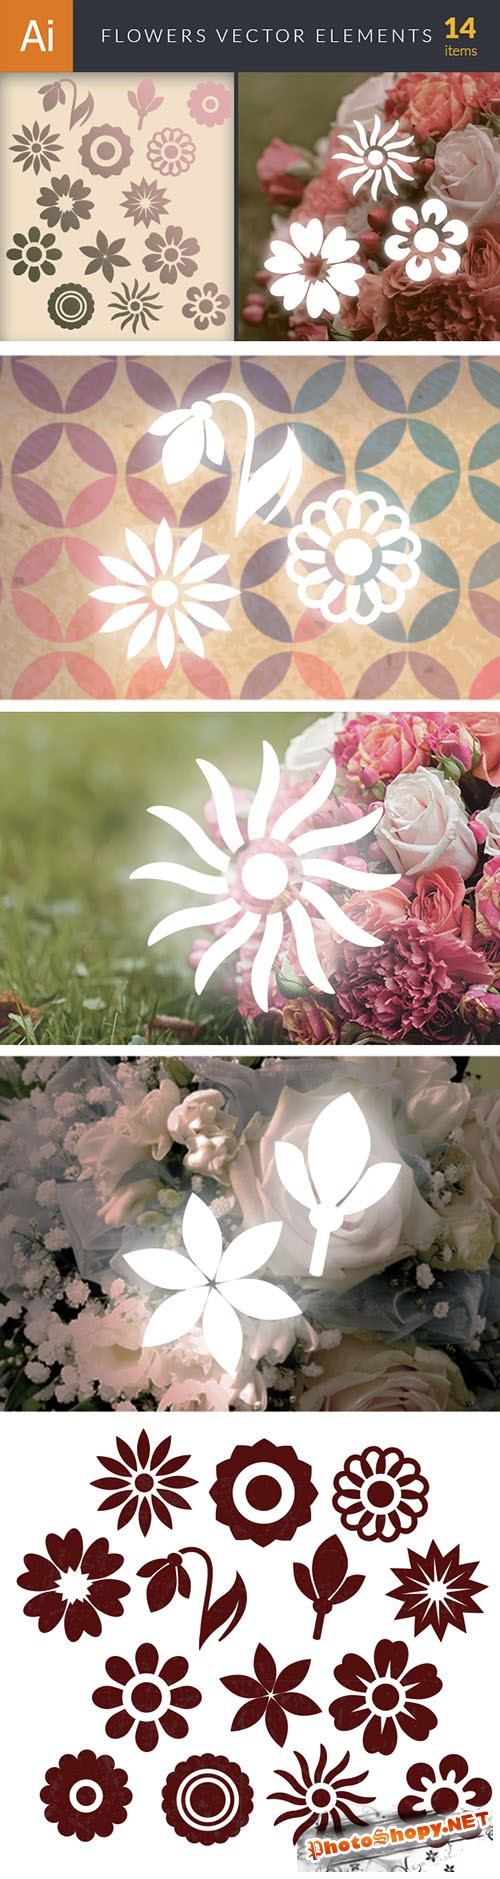 Simple Flowers Vector Elements Set 1